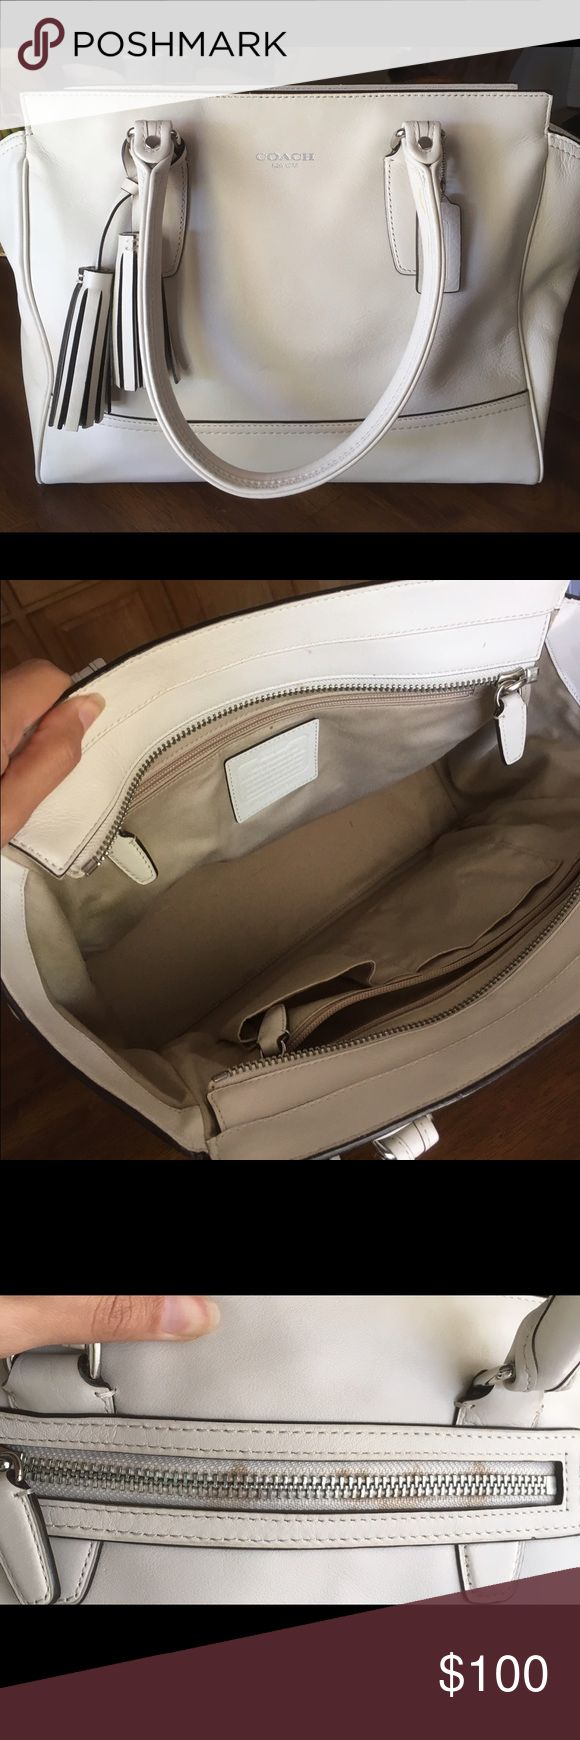 Coach Legacy Leather Medium Candace Bag Authentic Coach bag! Has some stains on the back zipper. Includes leather moisturizer! Coach Bags Satchels